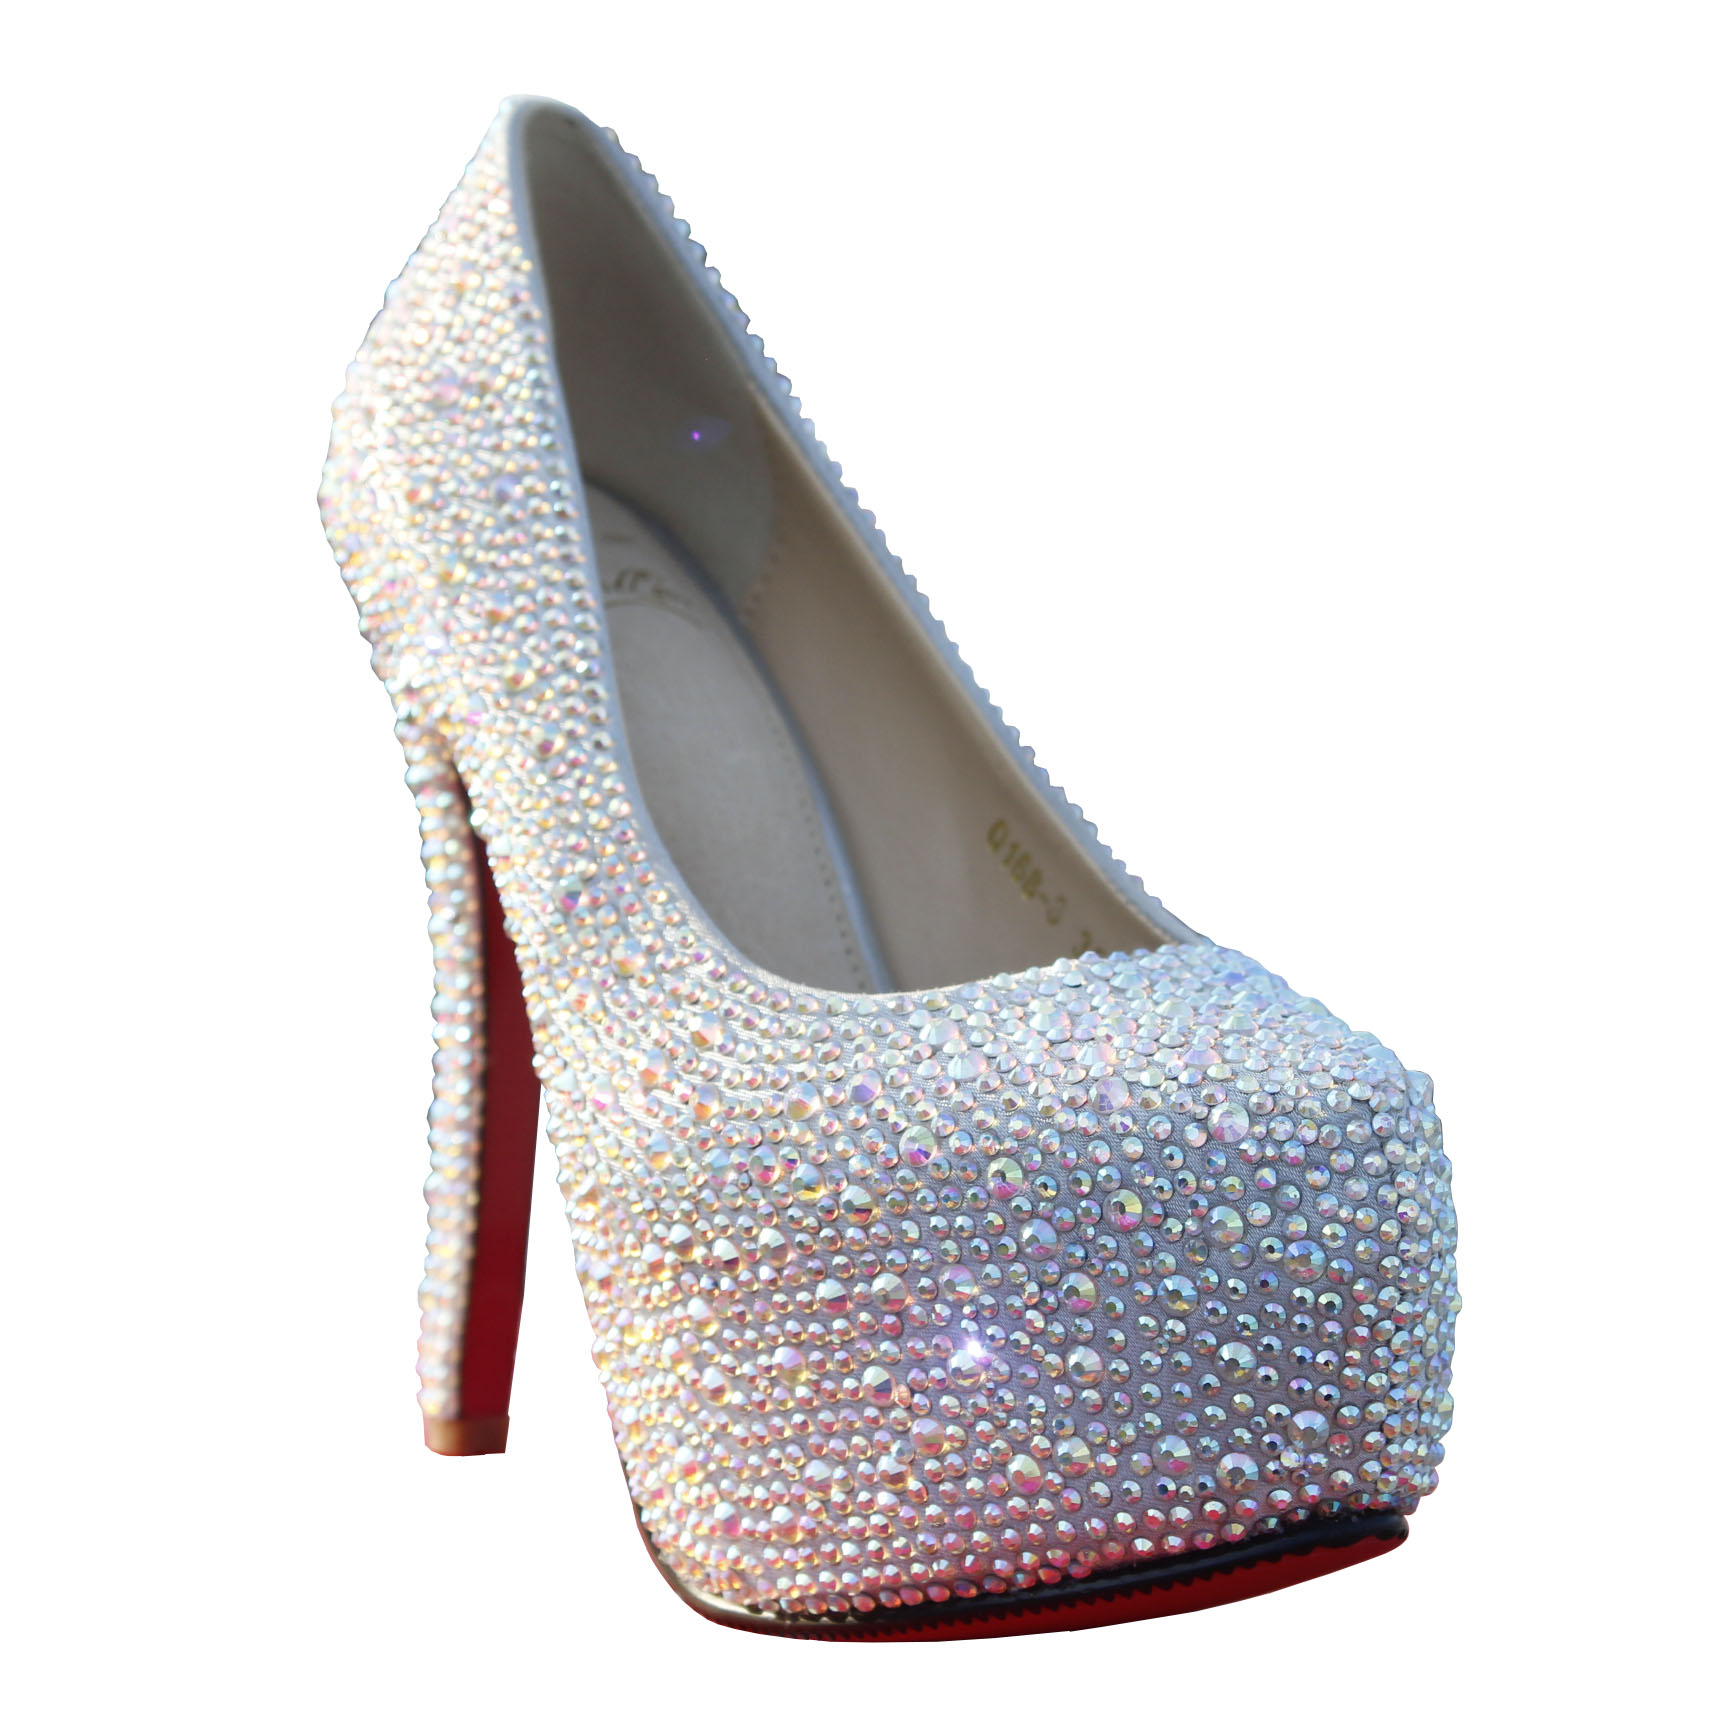 Free Shipping 11/14cm Fashion Lady Sparkly Upper Stiletto Heels Rhinestone Shoes Crystal Shoes Wedding Shoes Platform Pumps-inPumps from Shoes on Aliexpress.com